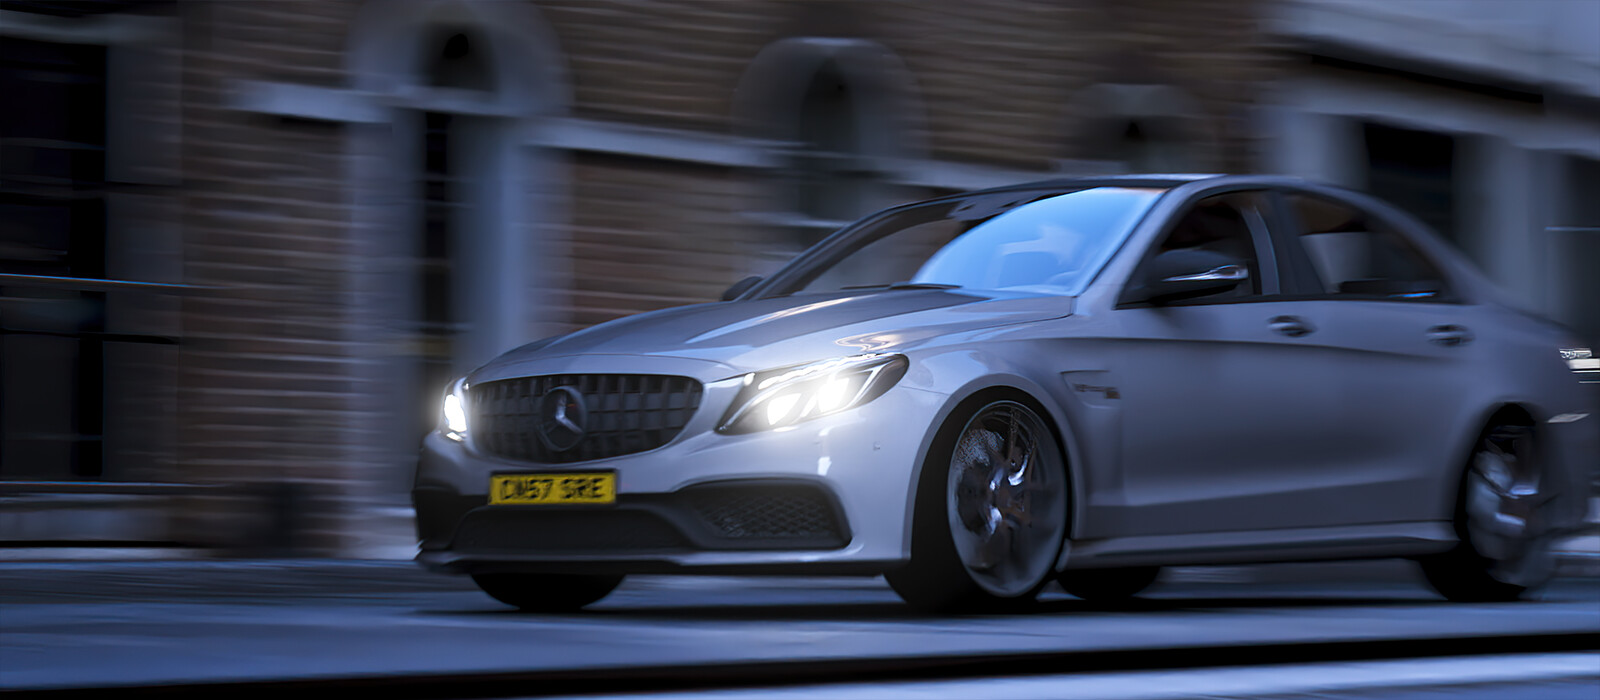 Mercedes AMG C63s Animation | 5K animation | Cinema 4D and Redshift